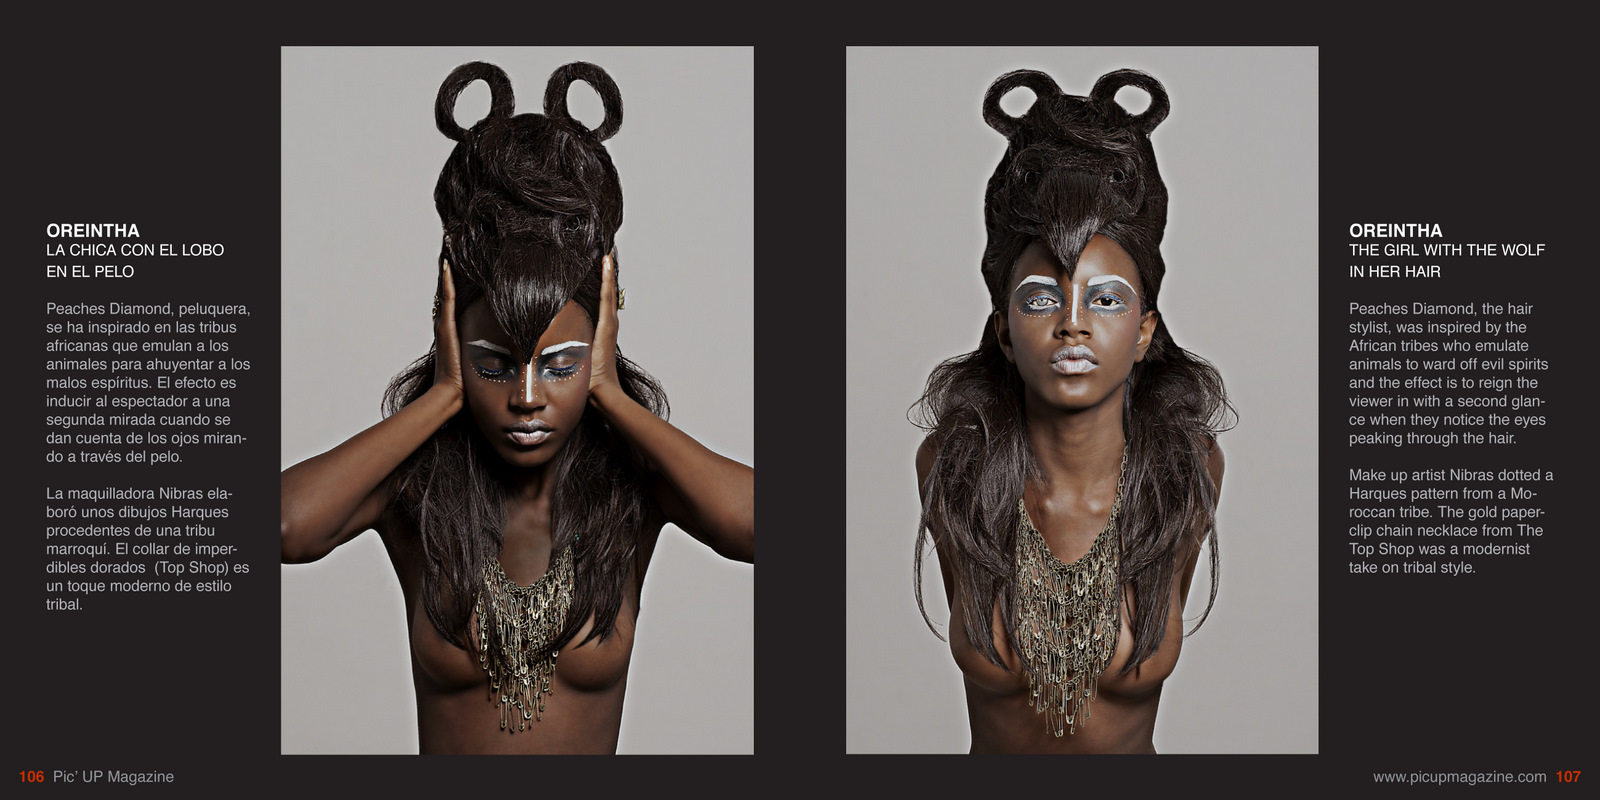 Pic'UP Magazine Issue 05 Photography by GEORGINA BOLTON KING